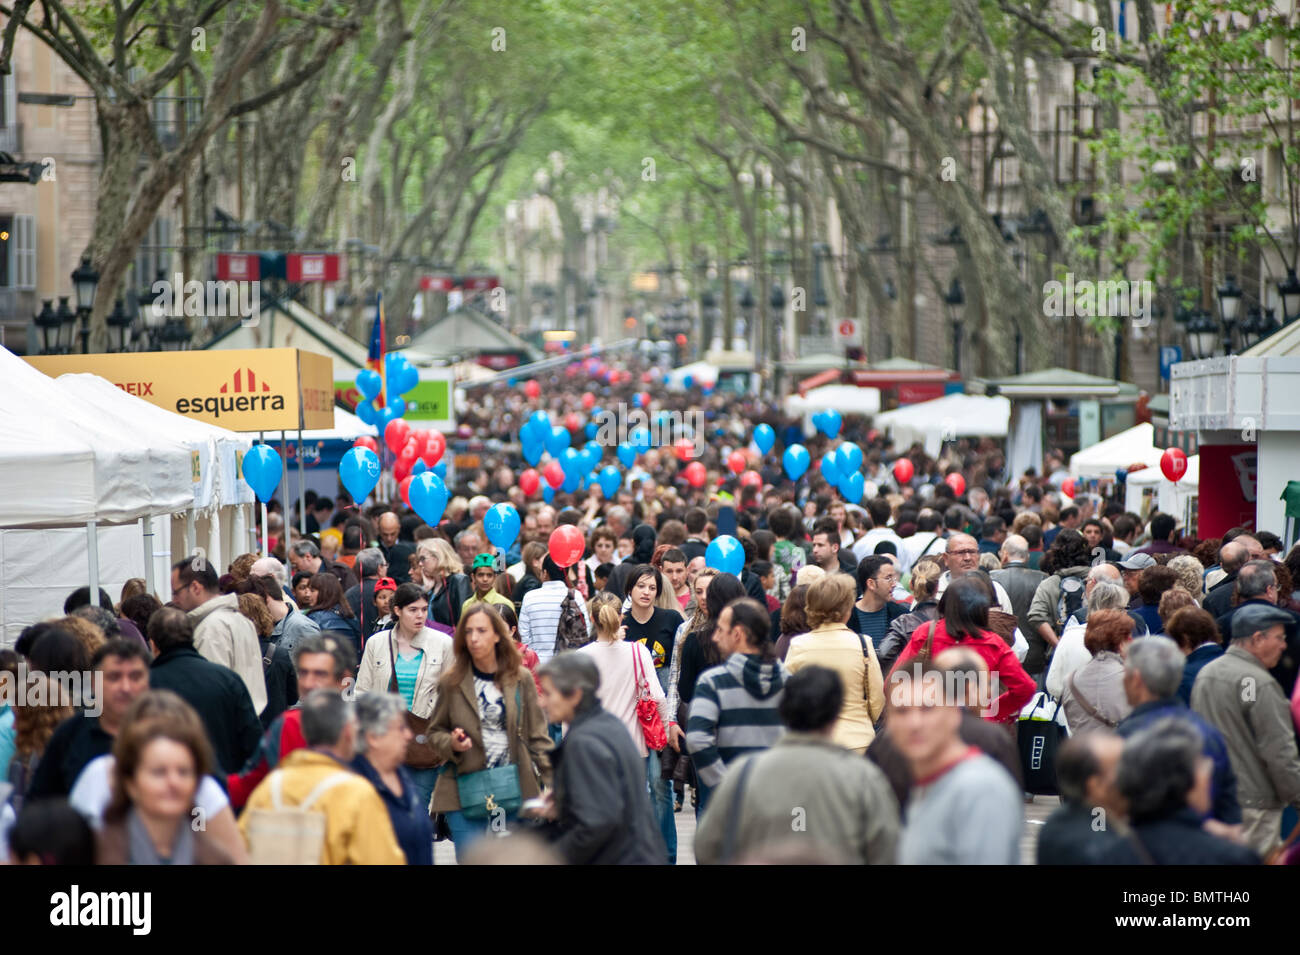 View of Las Ramblas crowded with poeple in the day of Sant Jordi - Stock Image